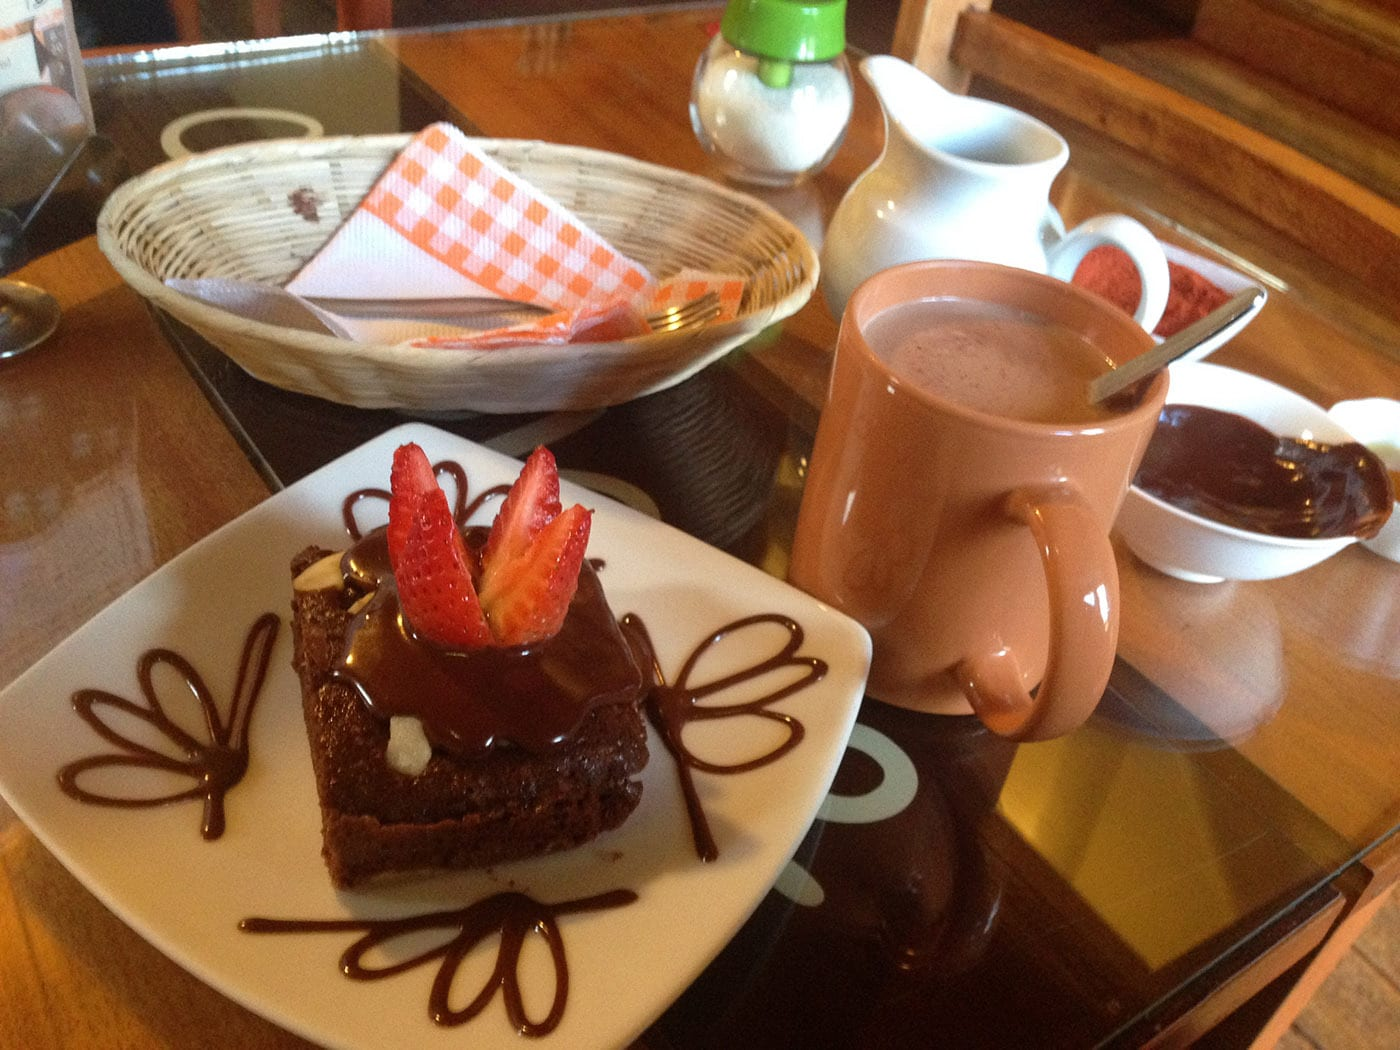 Brownie and hot chocolate at the chocolate museum in Cusco, Peru. What to eat in Cusco, Peru.